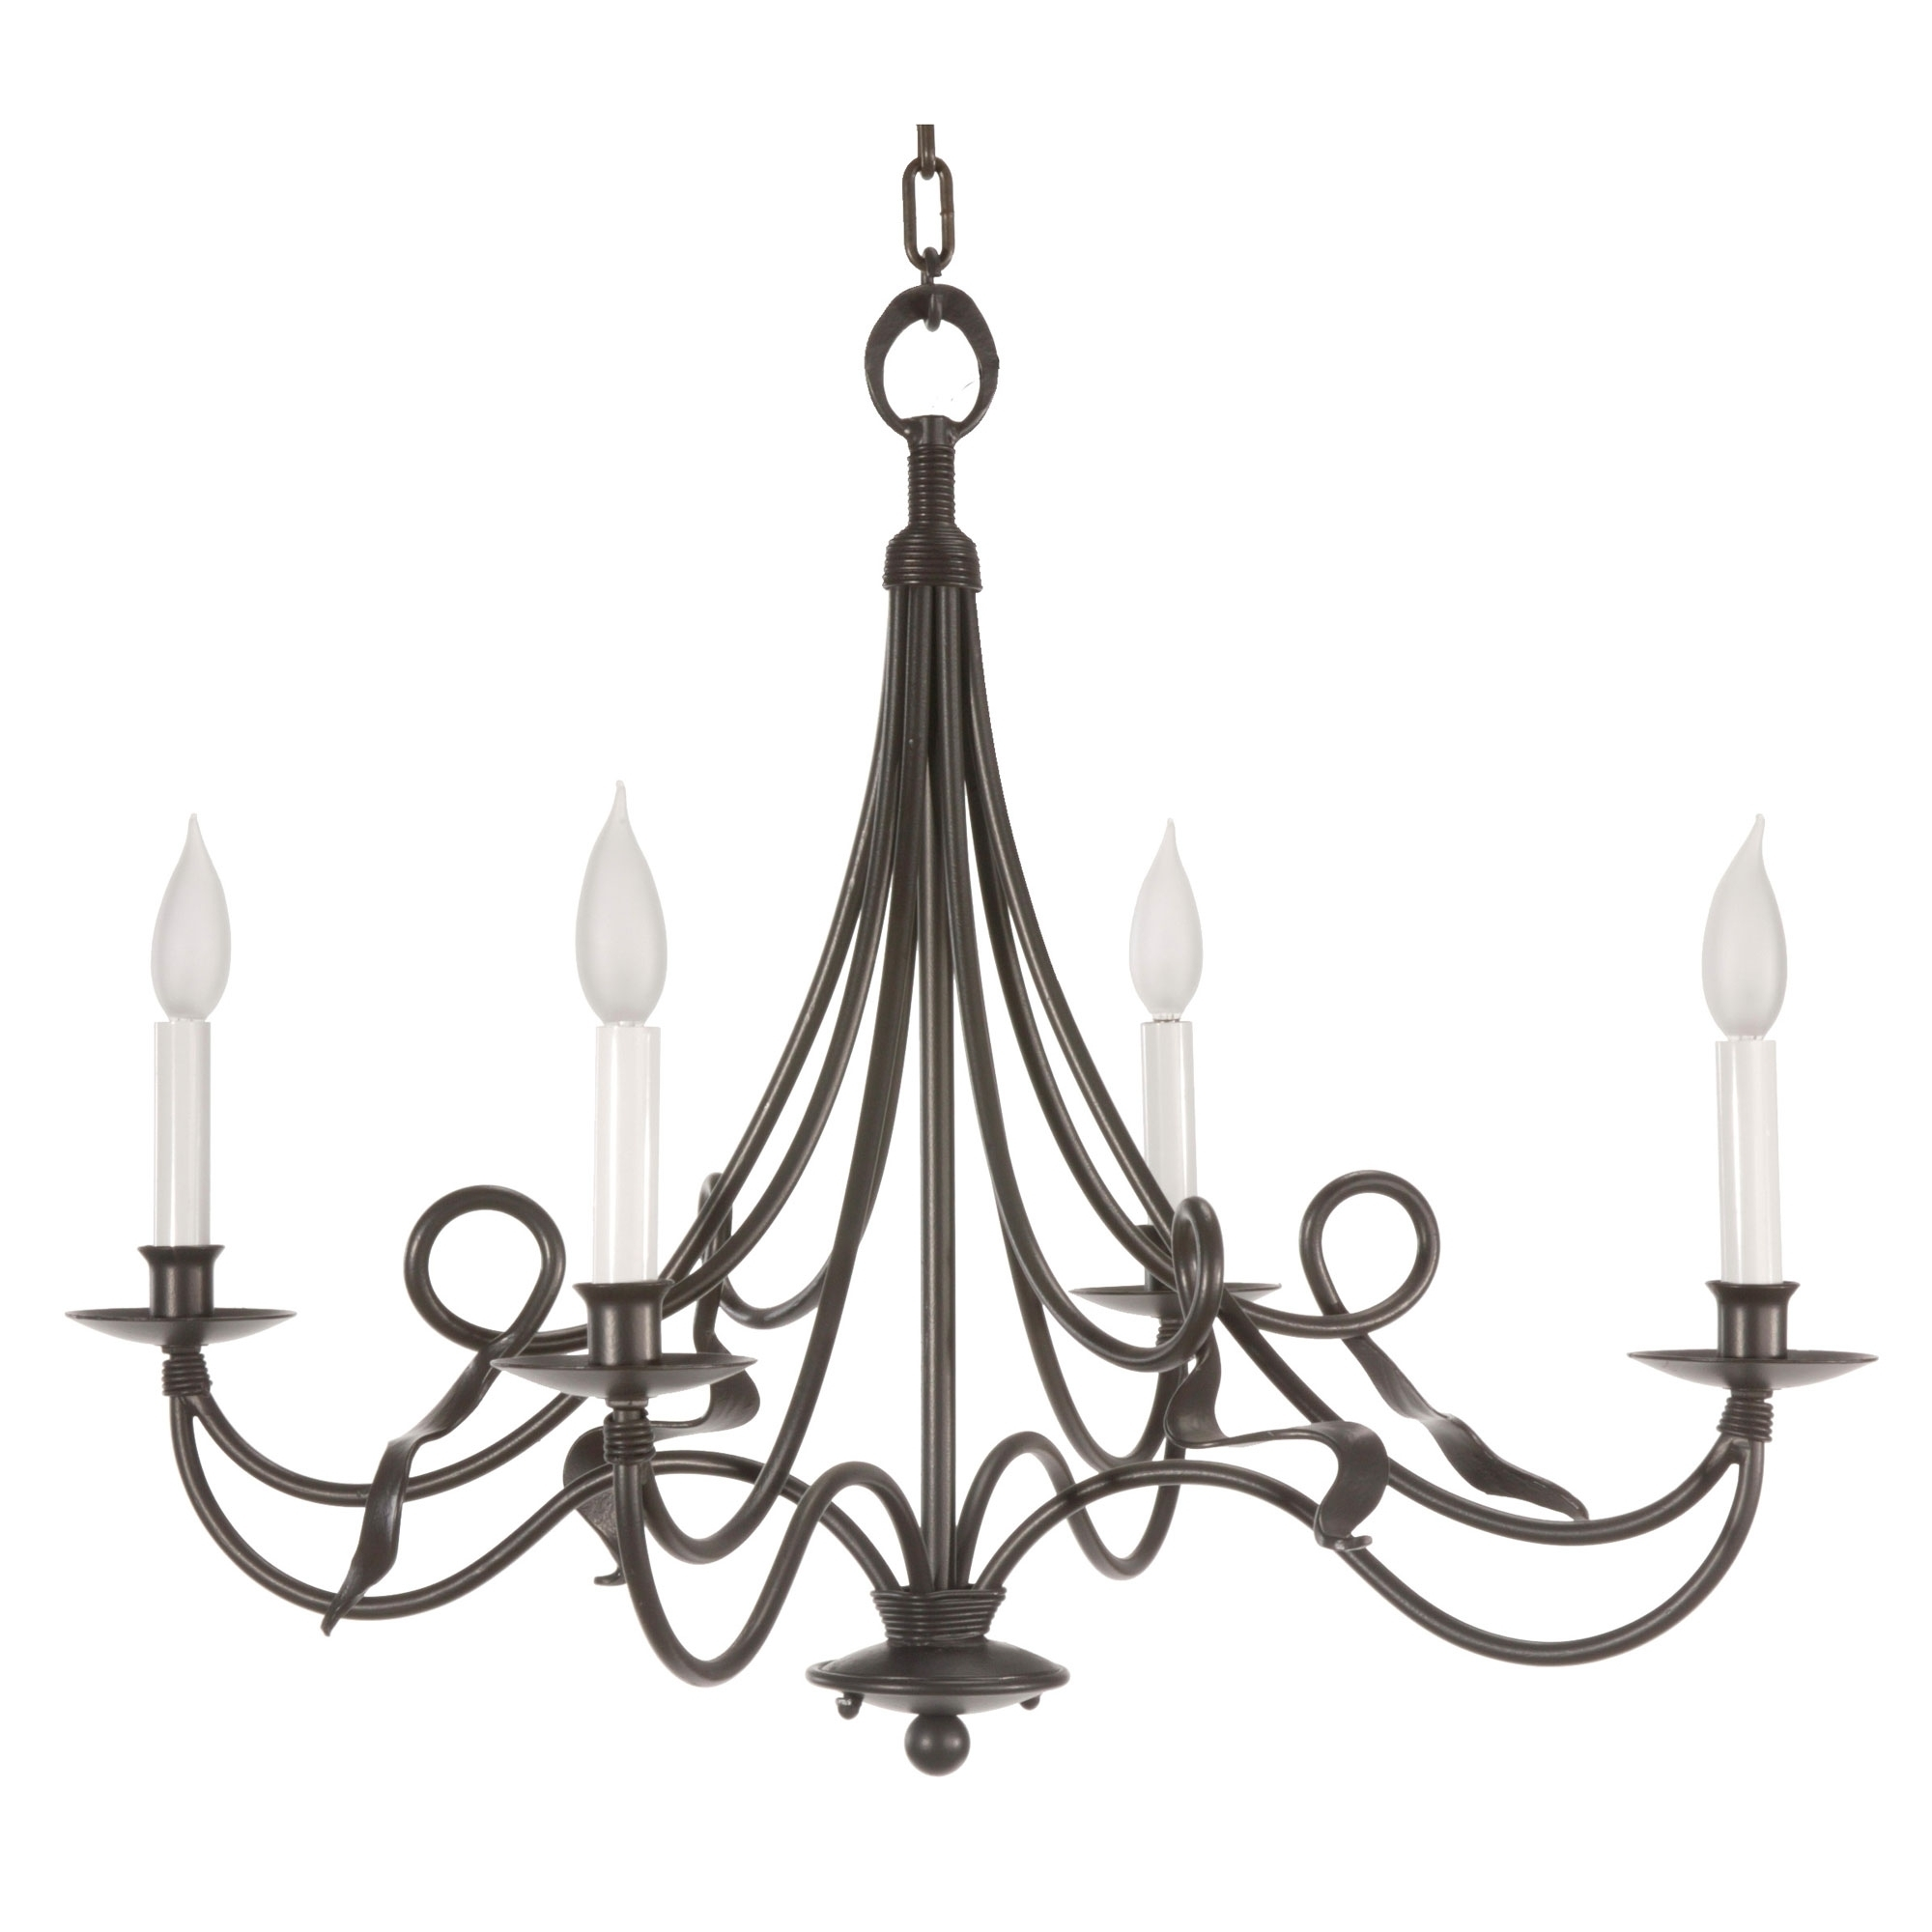 Well Liked Black Color Rustic Cast Iron Chandeliers With Candle Holder For Regarding Black Iron Chandeliers (View 19 of 20)